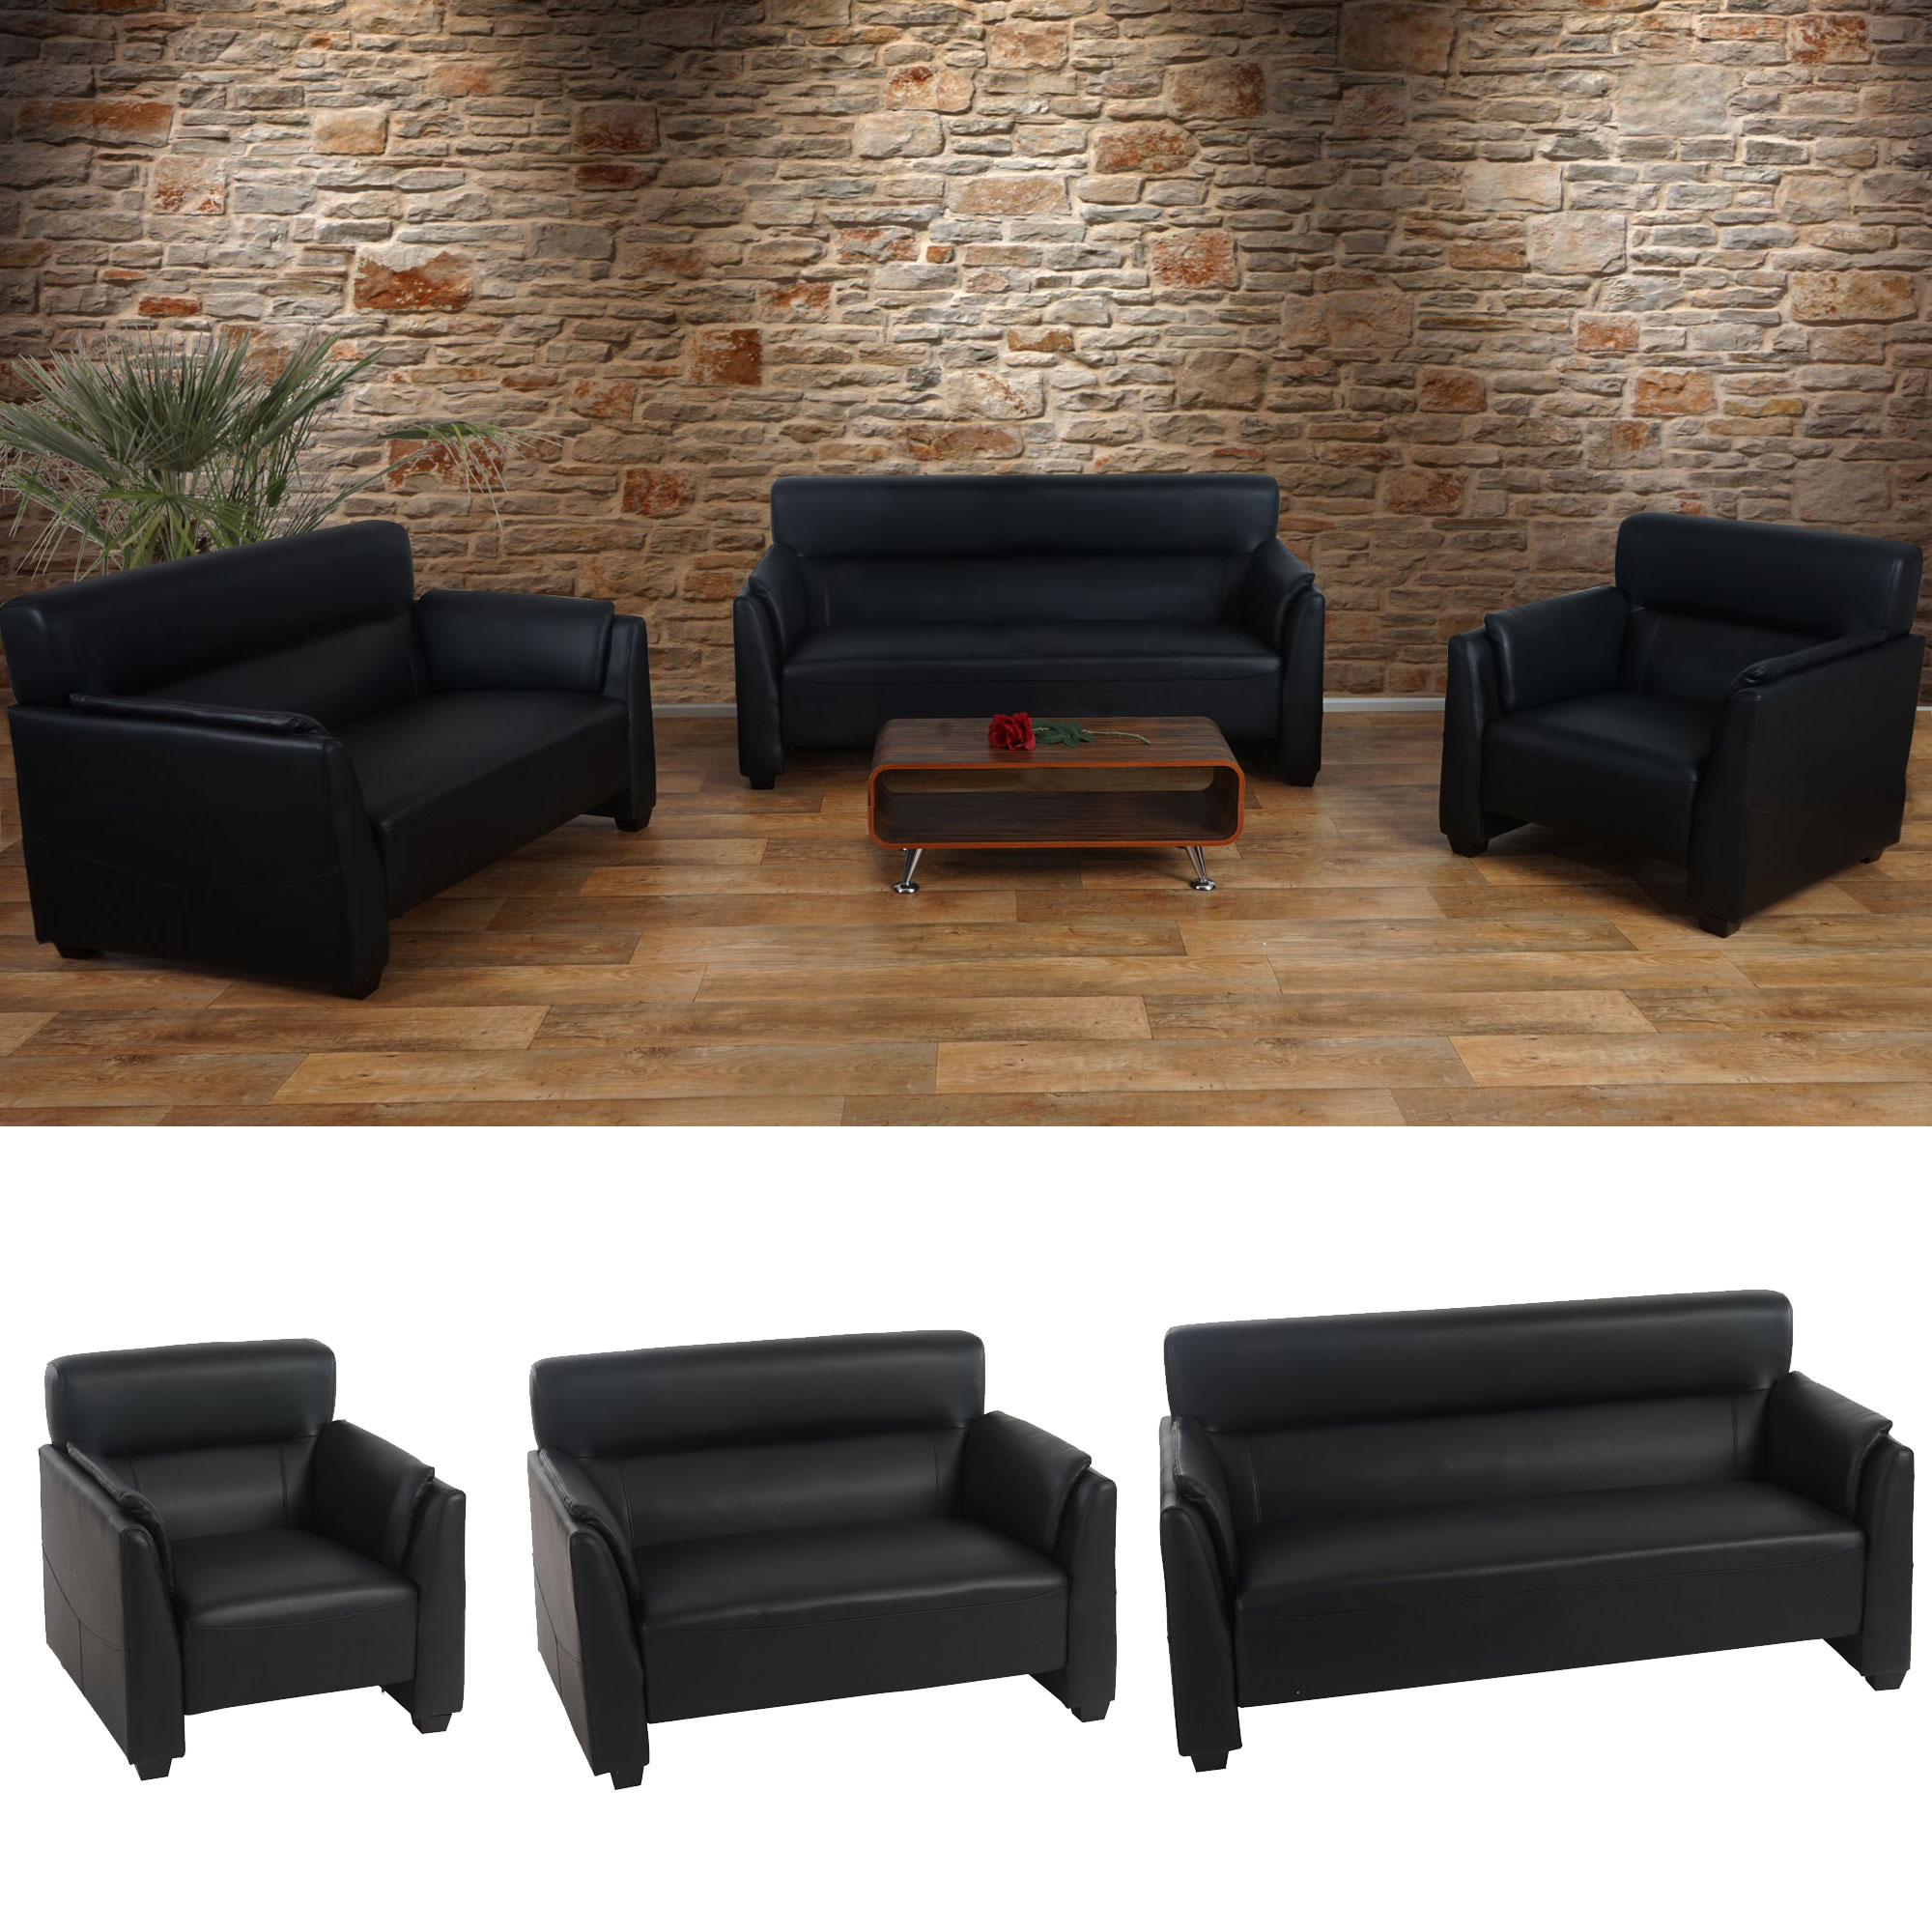 sofagarnitur couchgarnitur loungesofa sessel 2er sofa. Black Bedroom Furniture Sets. Home Design Ideas